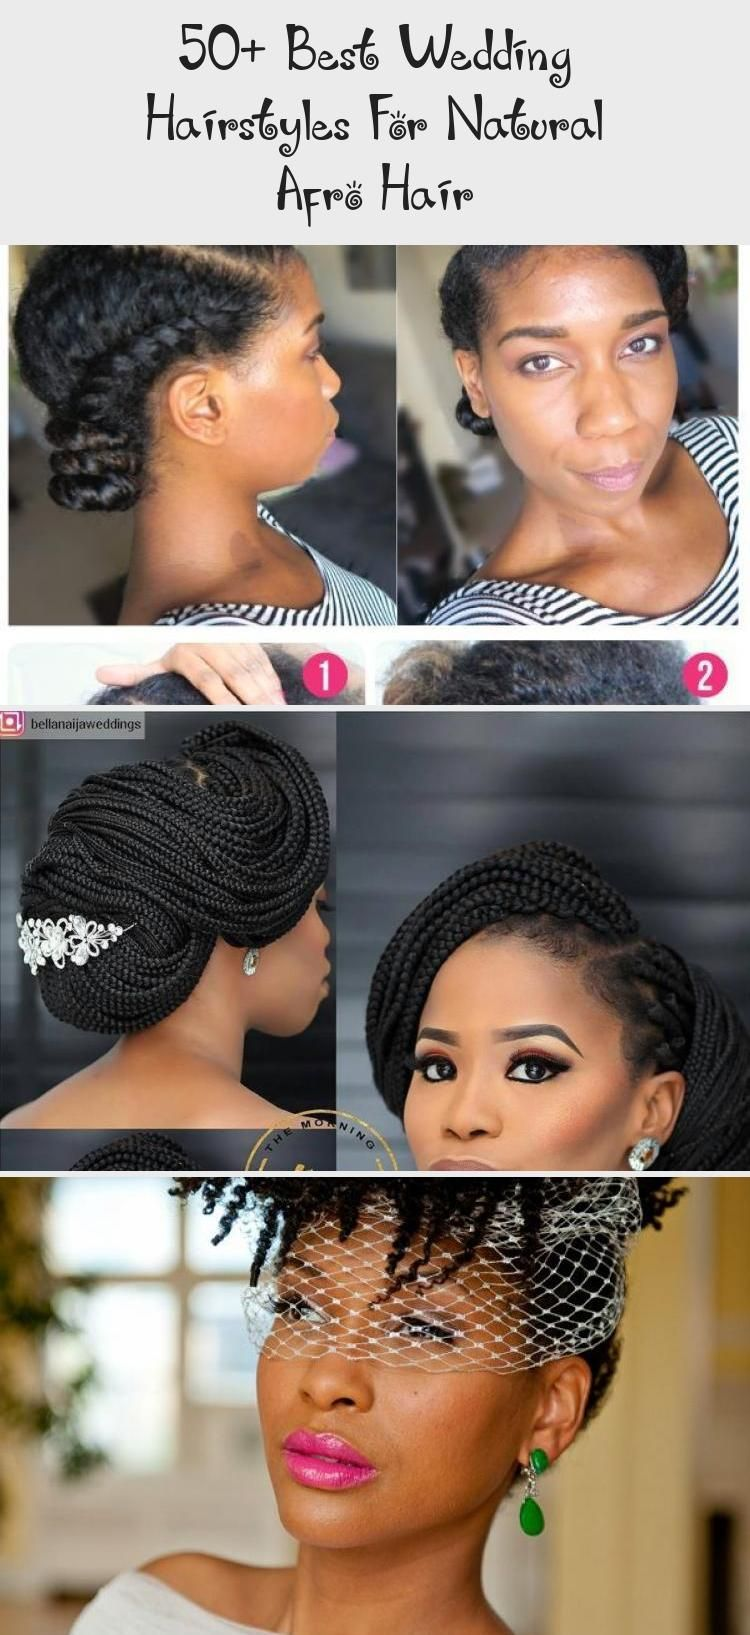 50+ best wedding hairstyles for natural afro hair #naturalhairRegimen #Beautiful...#afro #beautiful #hair #hairstyles #natural #naturalhairregimen #wedding